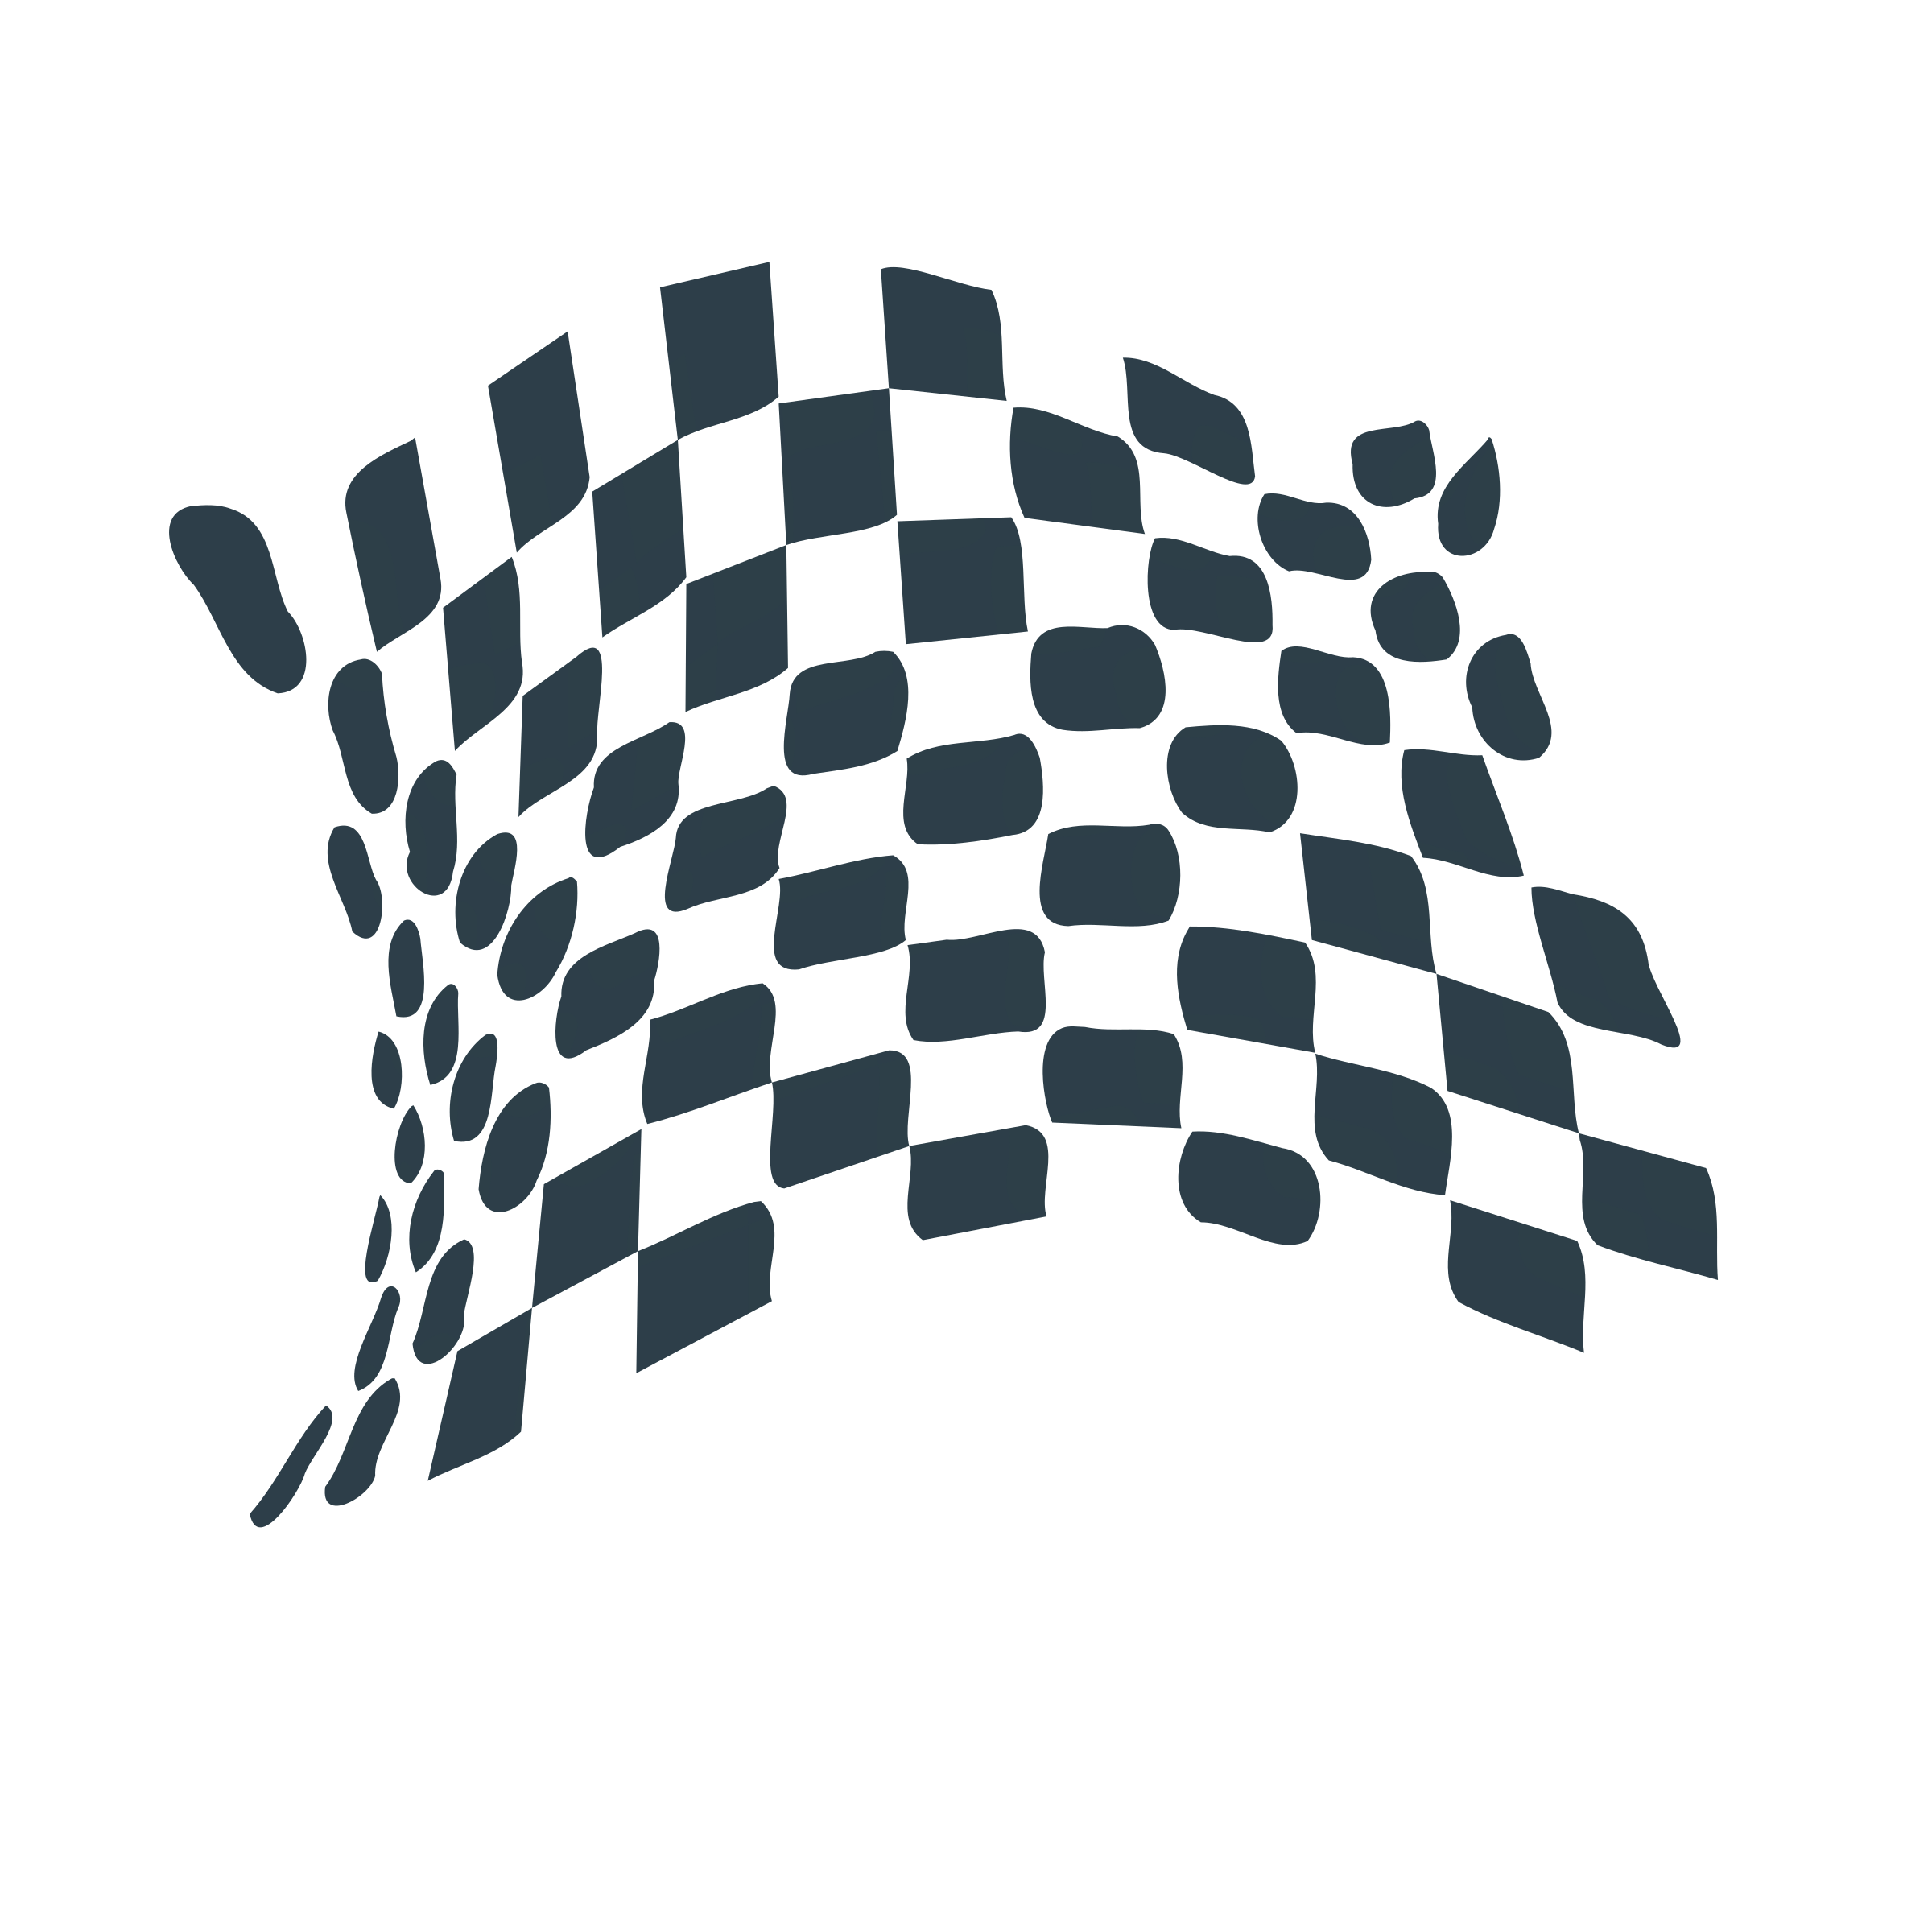 chequered flag abstract icon by netalloy